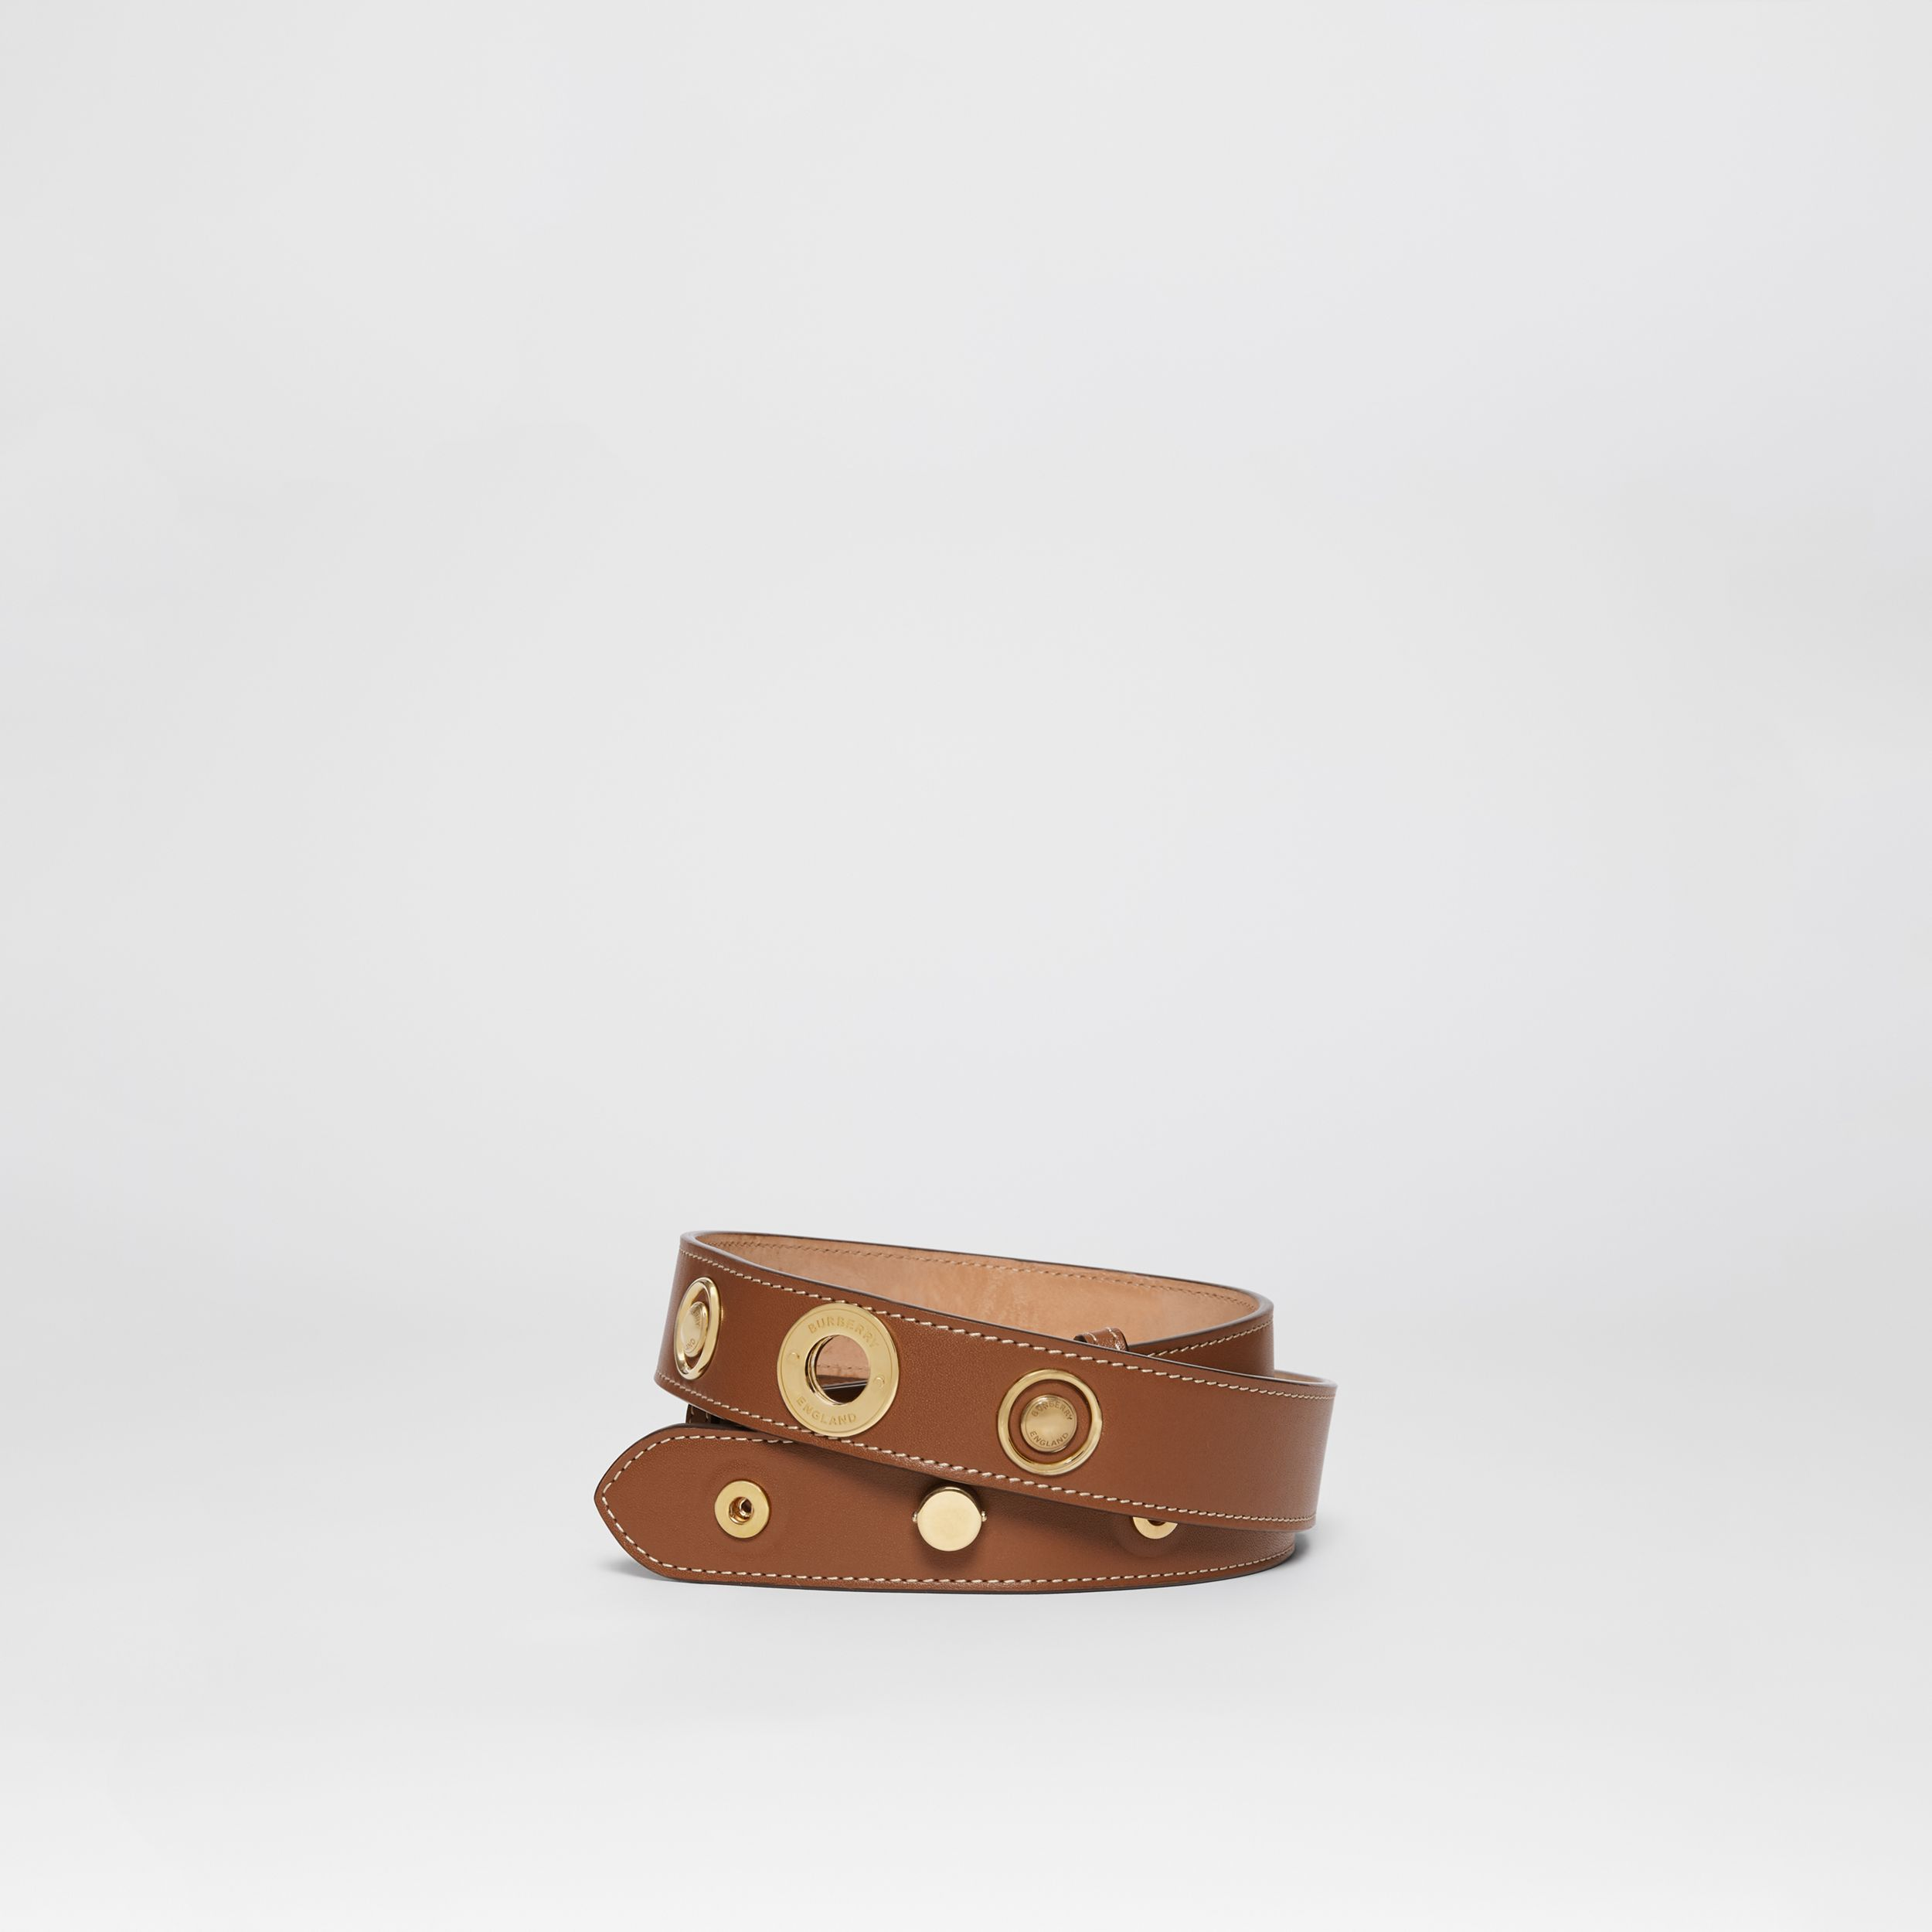 Triple Stud Leather Belt in Tan | Burberry Singapore - 1